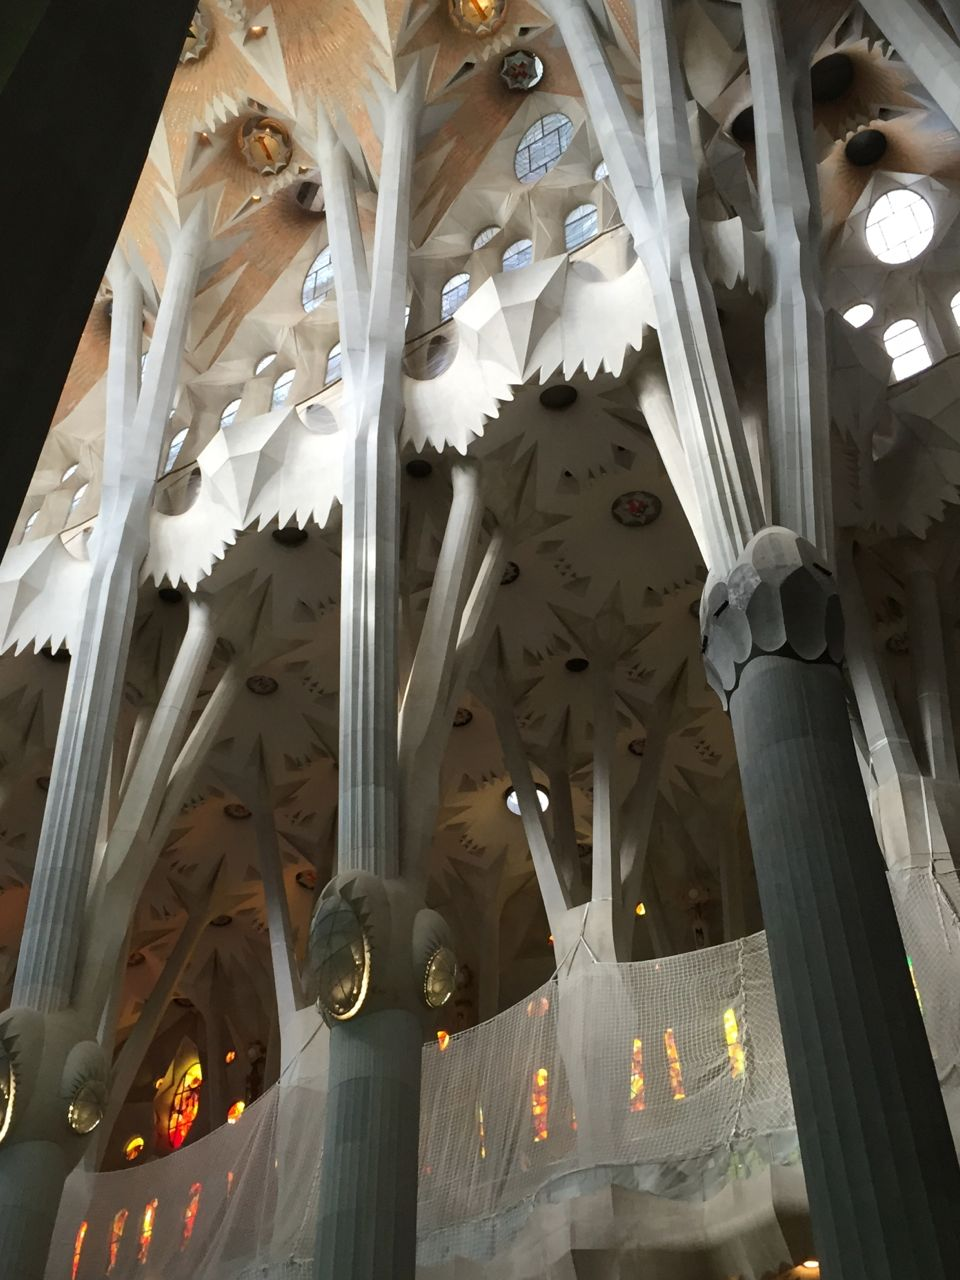 Gaudi was greatly influenced by natural forms. The soaring columns are reminiscent of huge old trees, whose branches form the canopy or ceiling of the church.